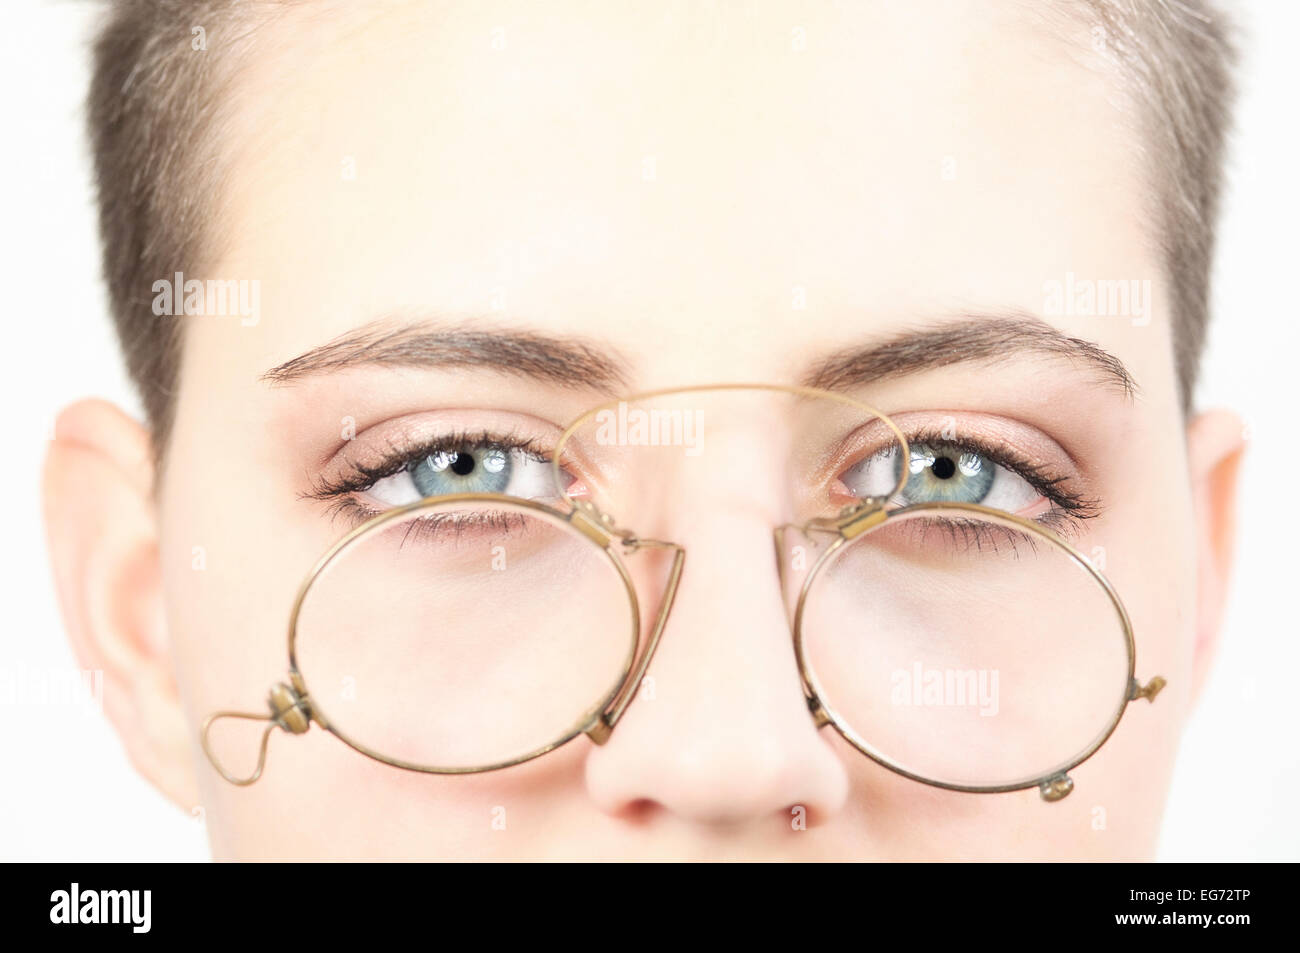 Girl with Old Eyeglasses - Stock Image